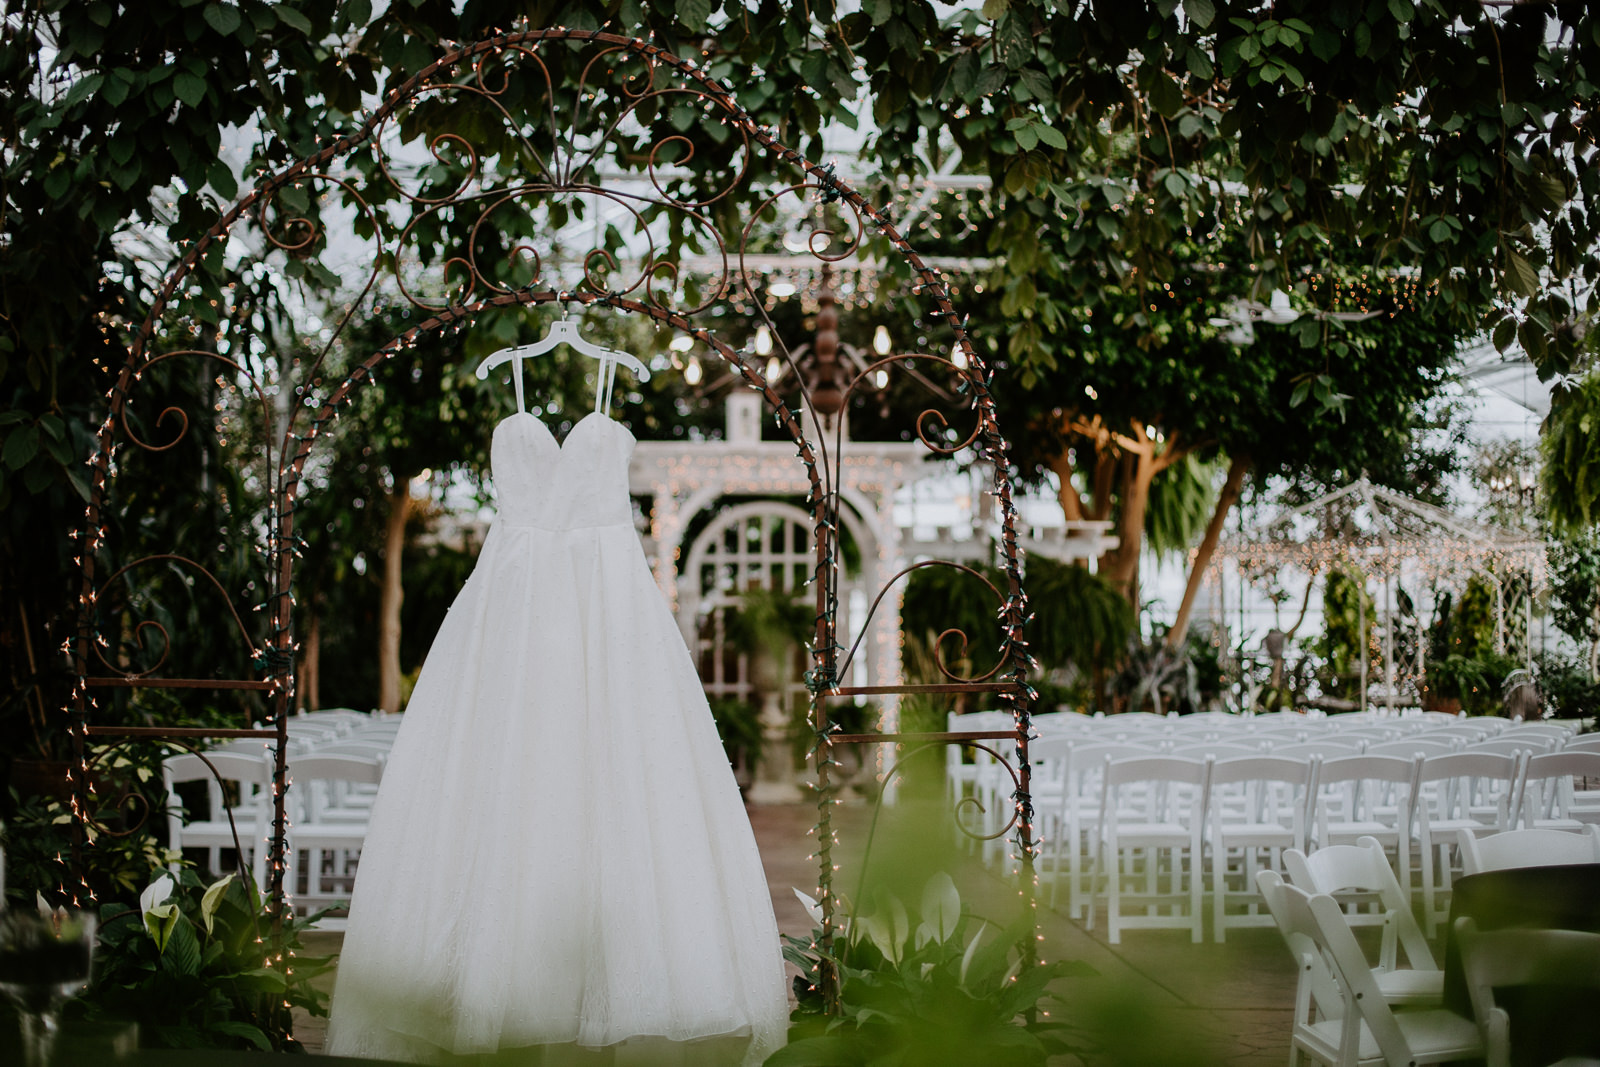 Wedding dress hanging in elegant location among greenery and vegetation